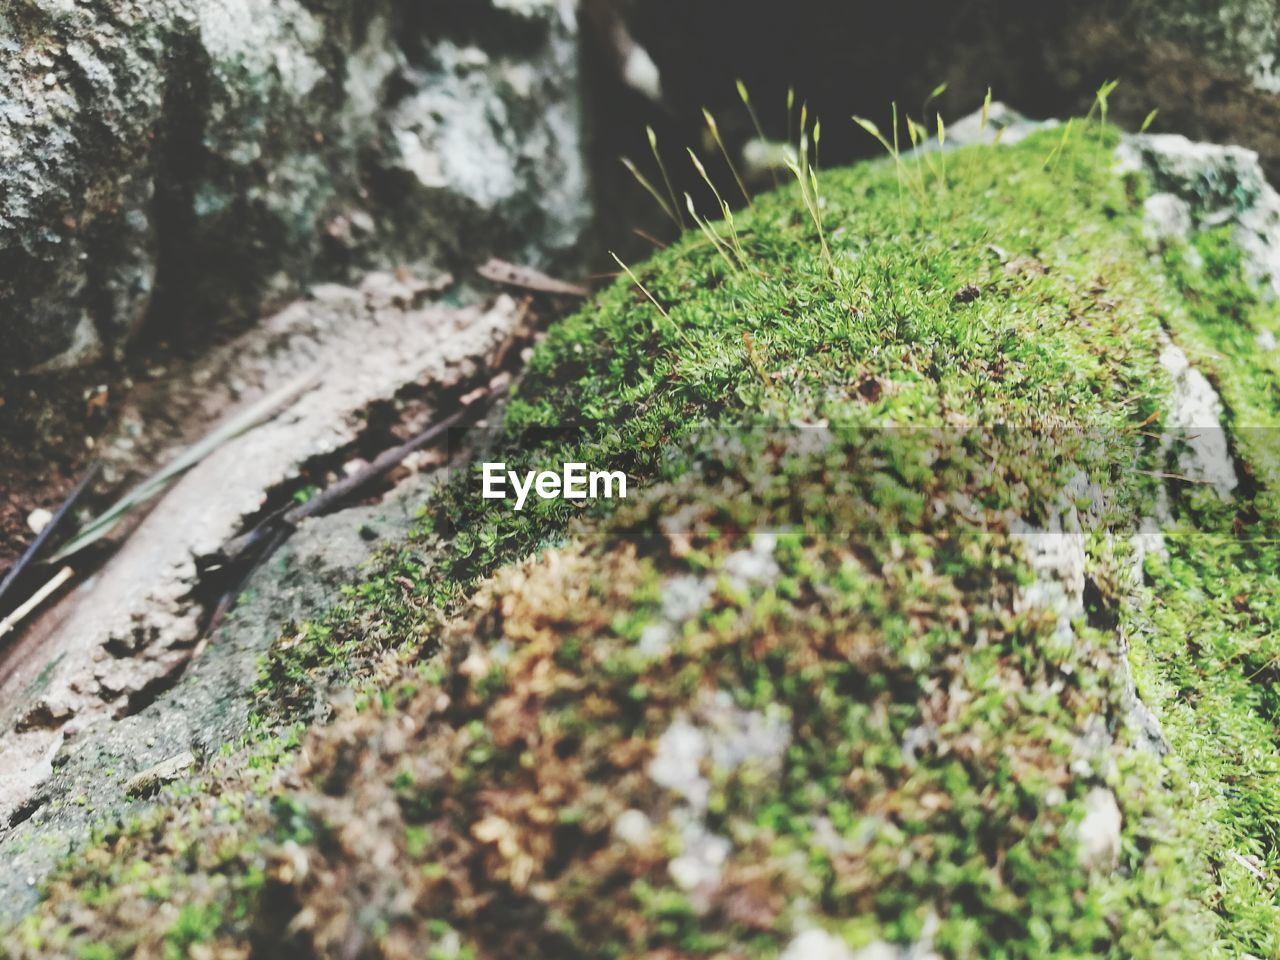 nature, green color, selective focus, growth, no people, moss, outdoors, close-up, day, plant, rock - object, beauty in nature